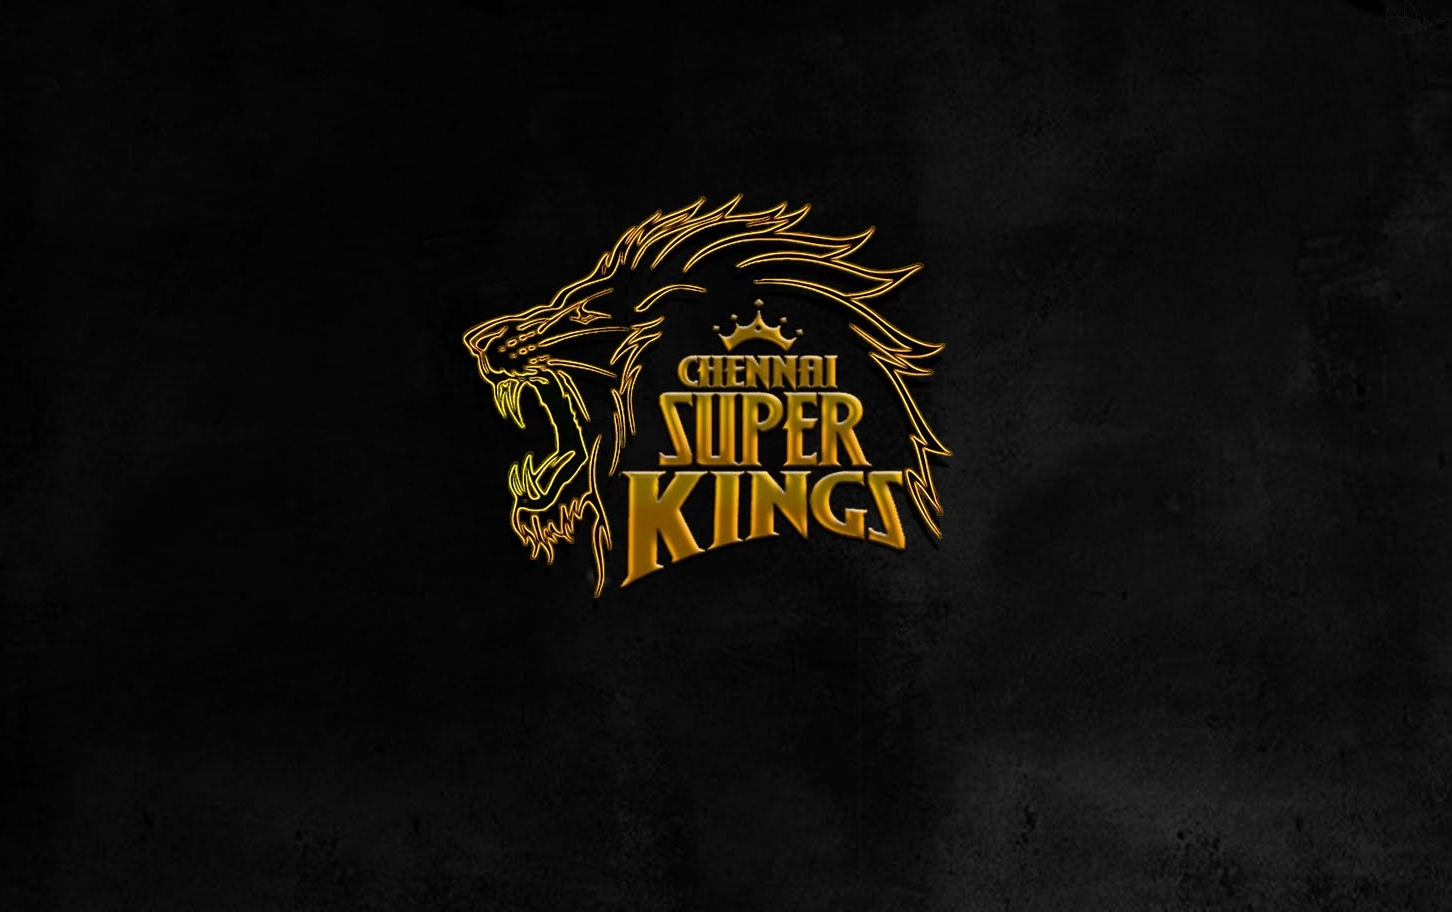 Chennai Super Kings Latest HD Wallpapers Latest HD Wallpapers 1452x912